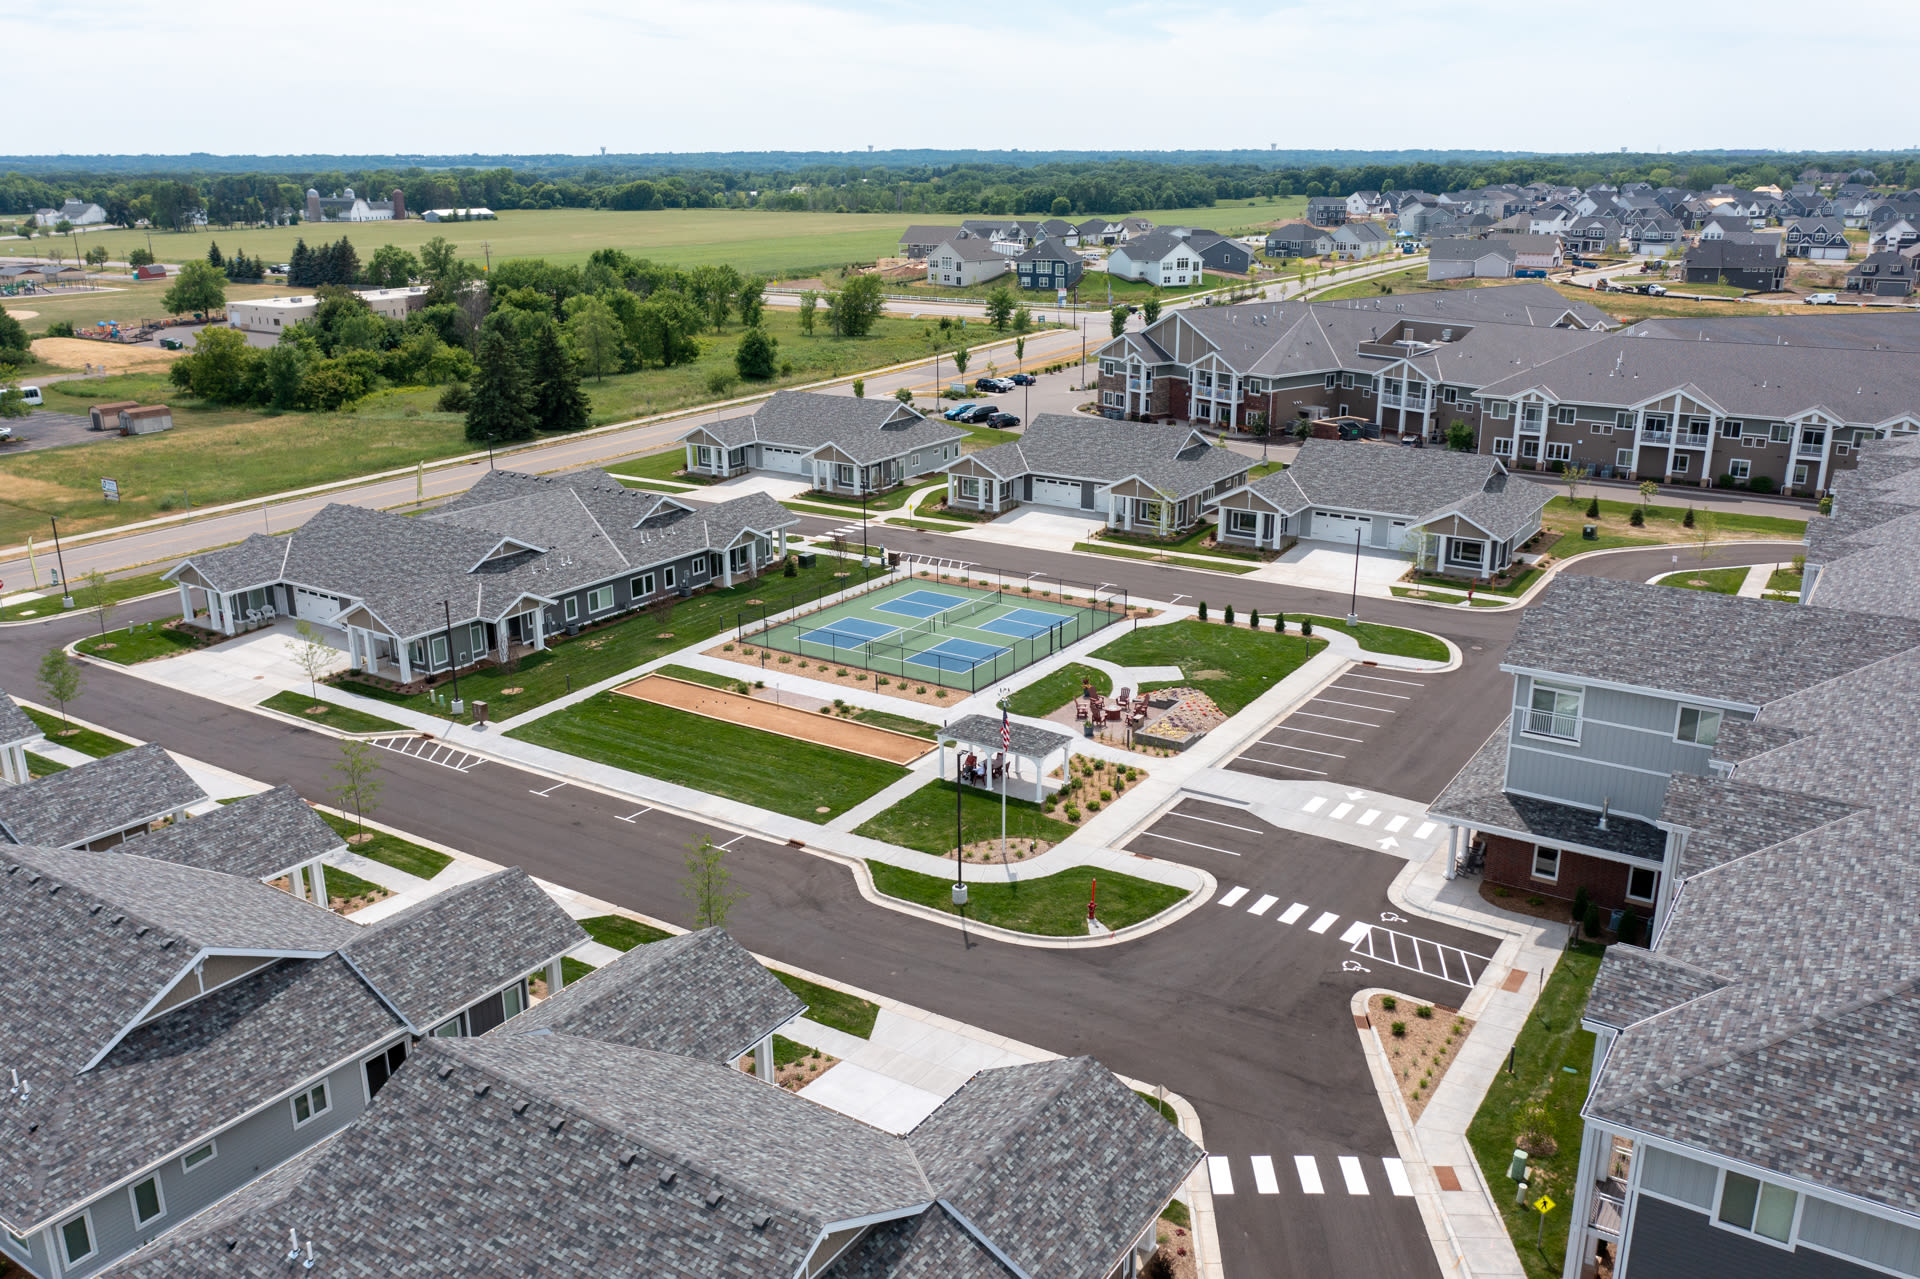 Aerial image showing road near tennis courts at The Fields at Arbor Glen in Lake Elmo, Minnesota